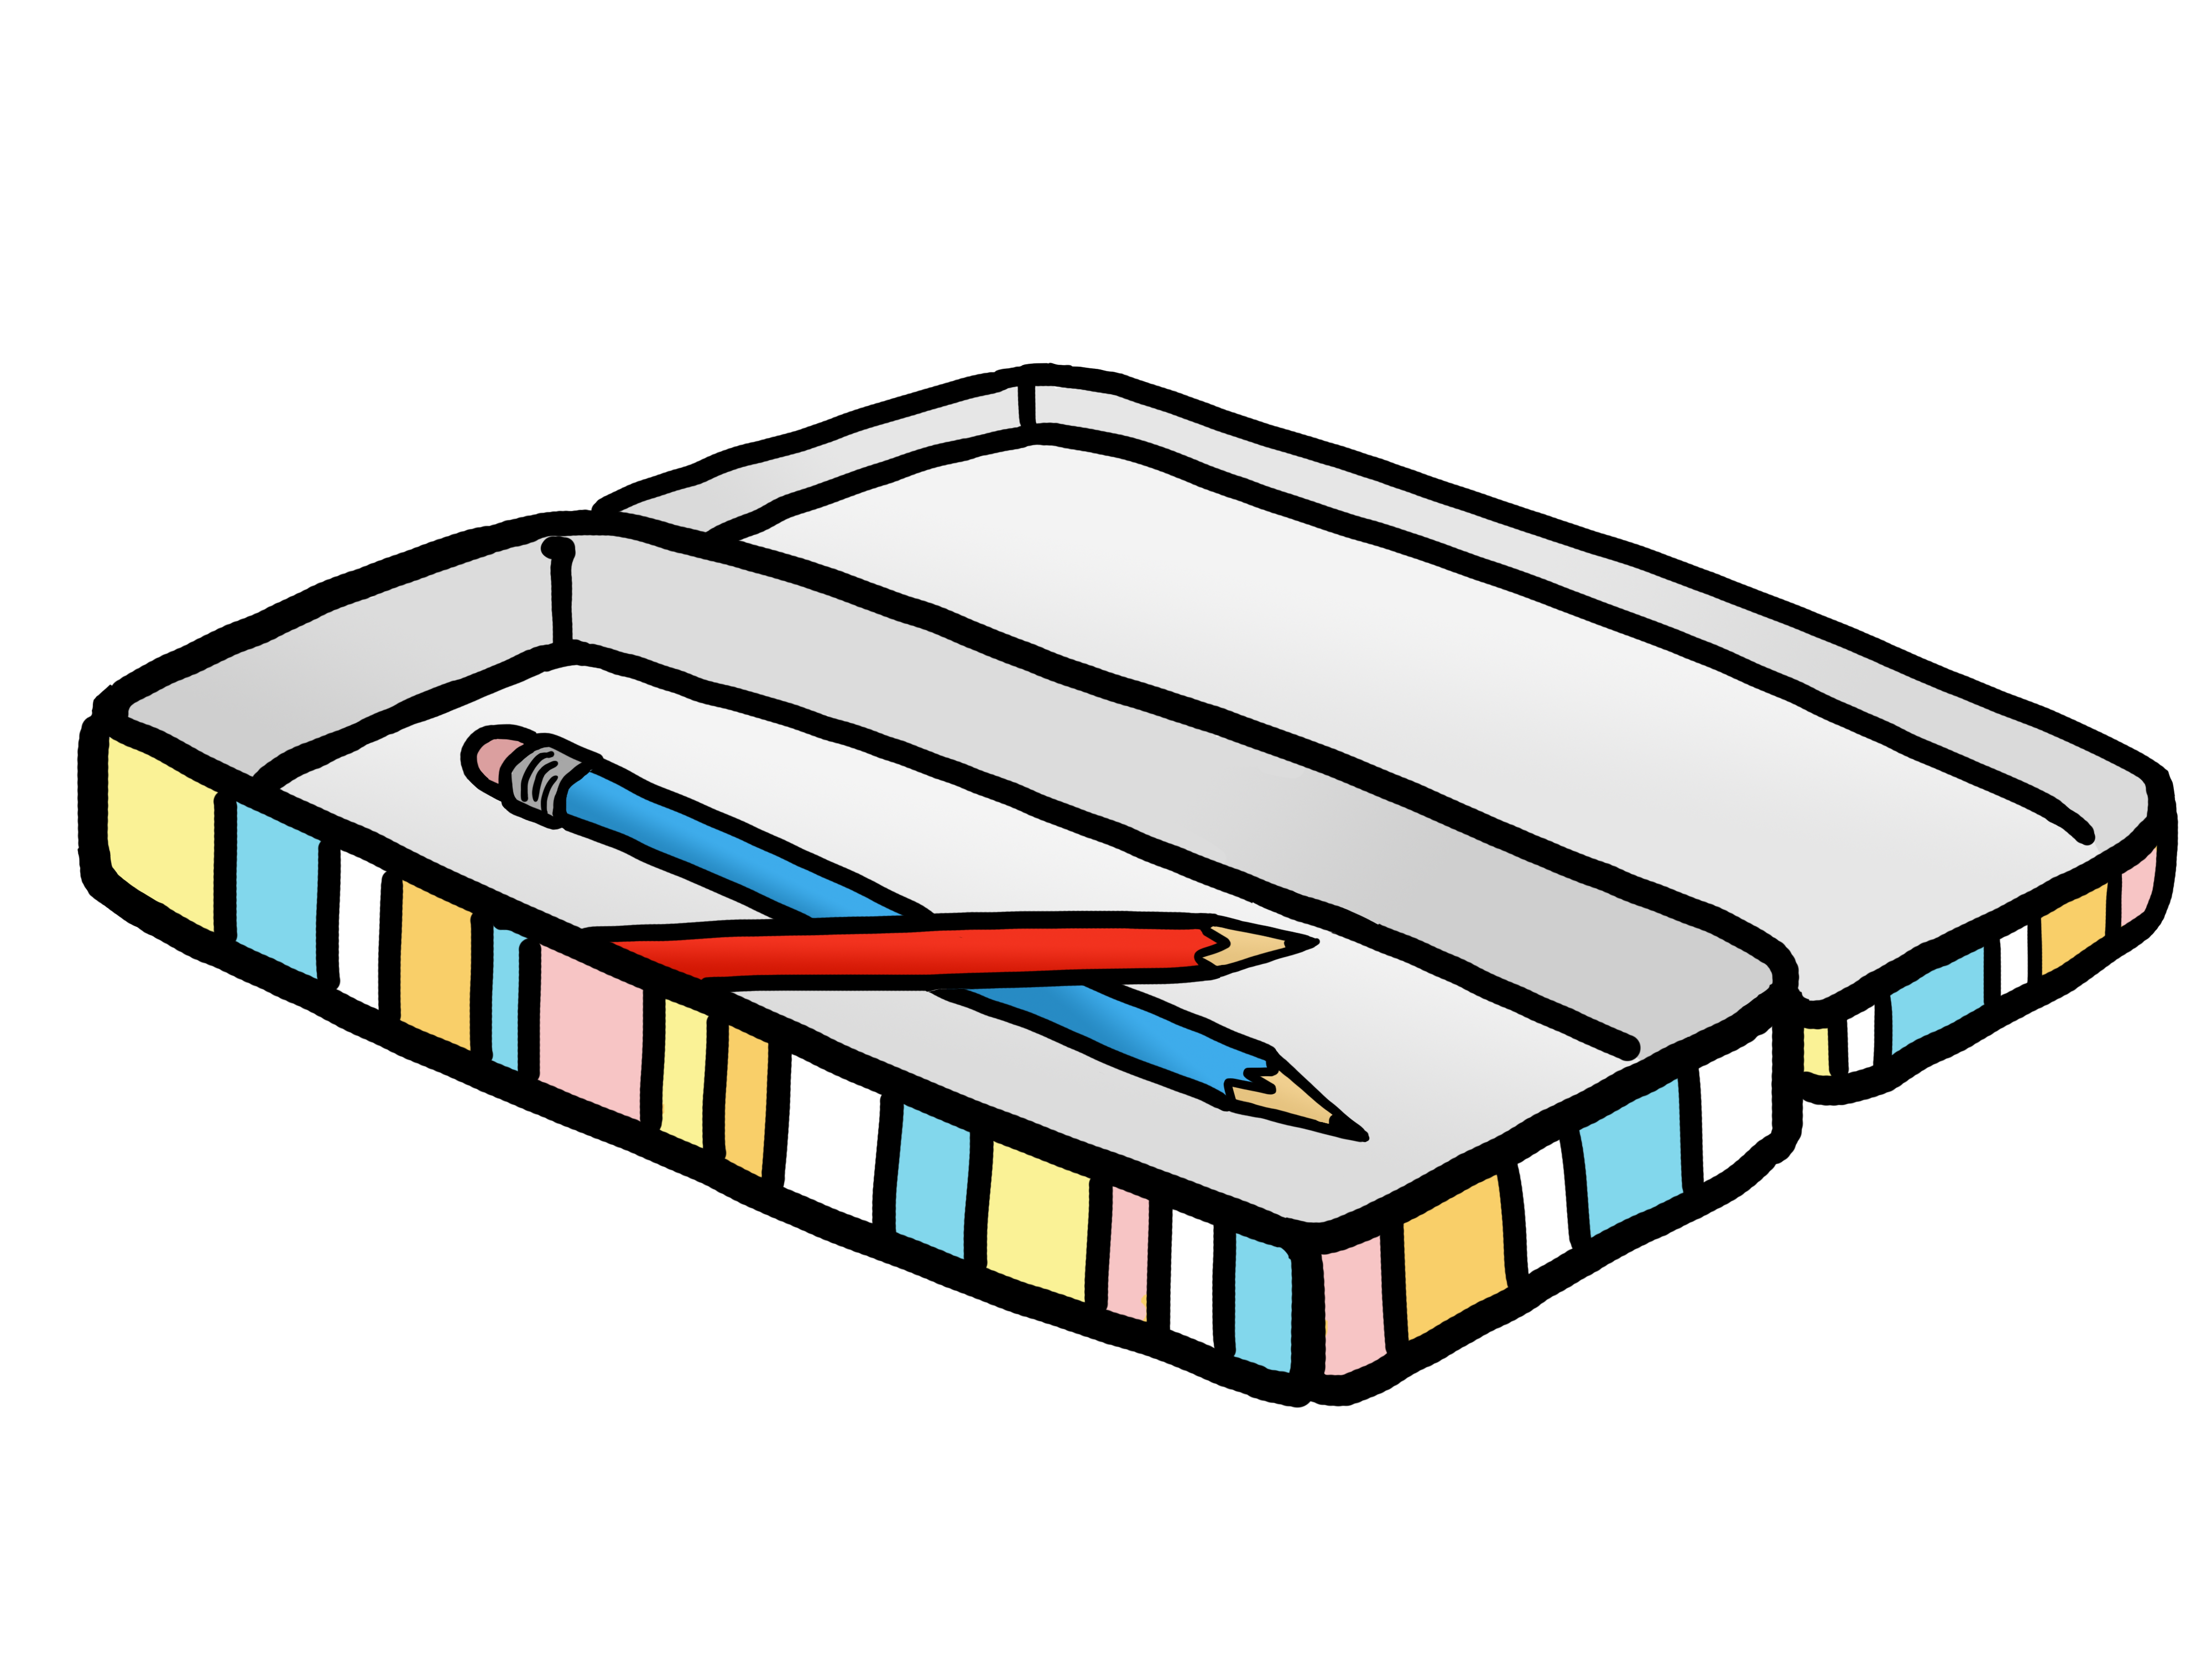 pencil case Pencil pouch clipart jpg